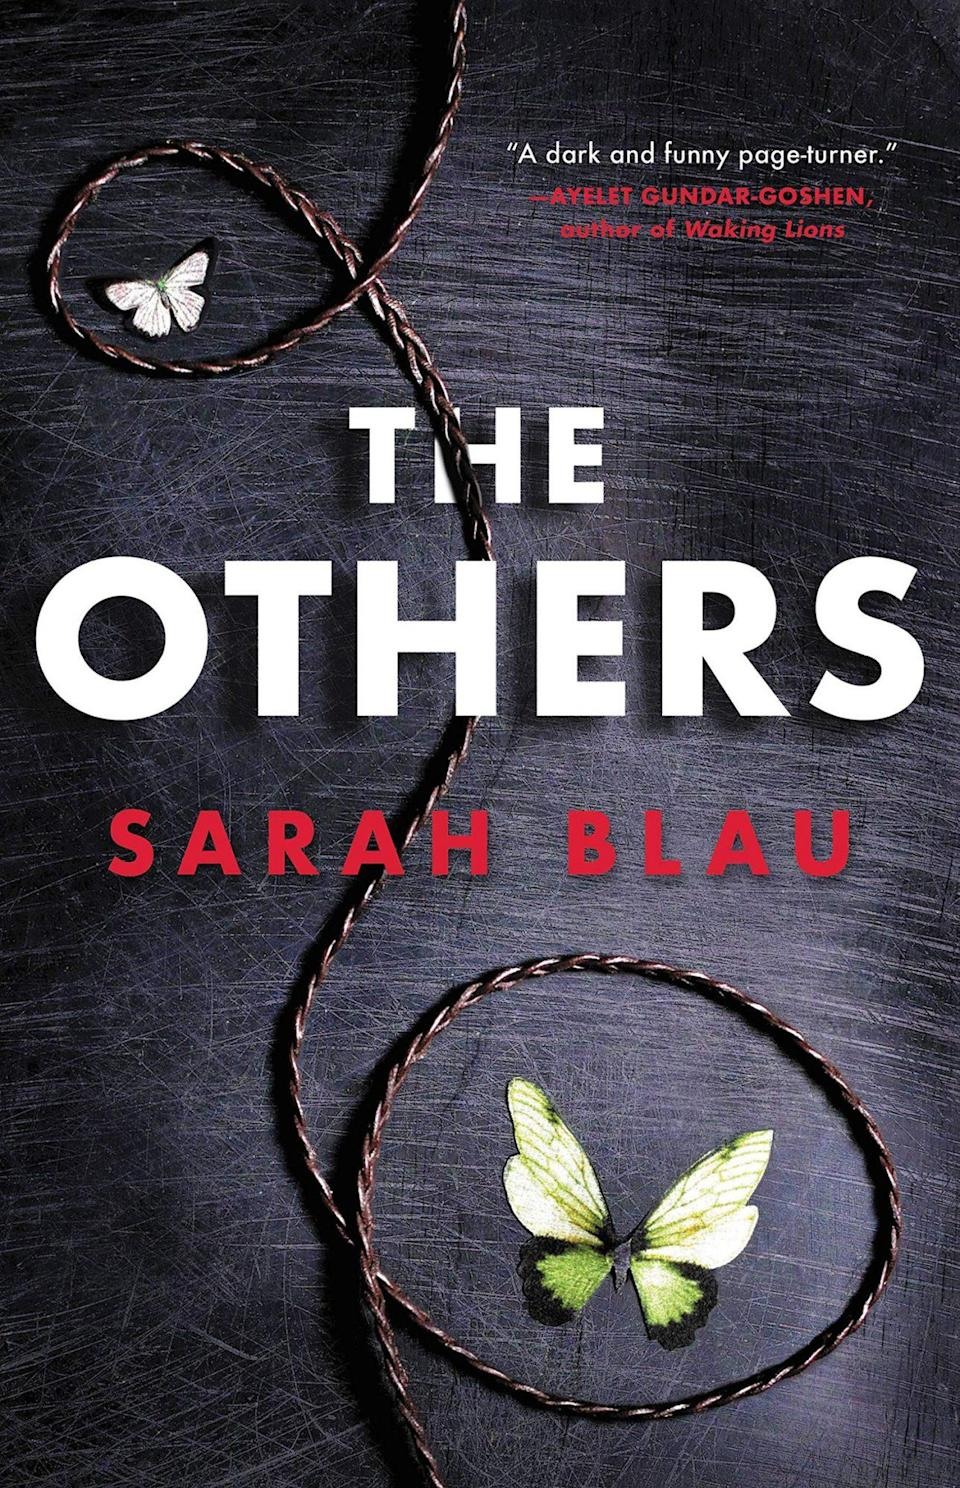 <p>Protagonist (and unreliable narrator) Sheila receives news that an old friend, who is also a famous scholar in Israel, where the book takes place, has been murdered. She's simultaneously a chief witness and prime suspect, as the police try to figure out how the victim's notorious antimotherhood beliefs come into play. (April 27)</p>